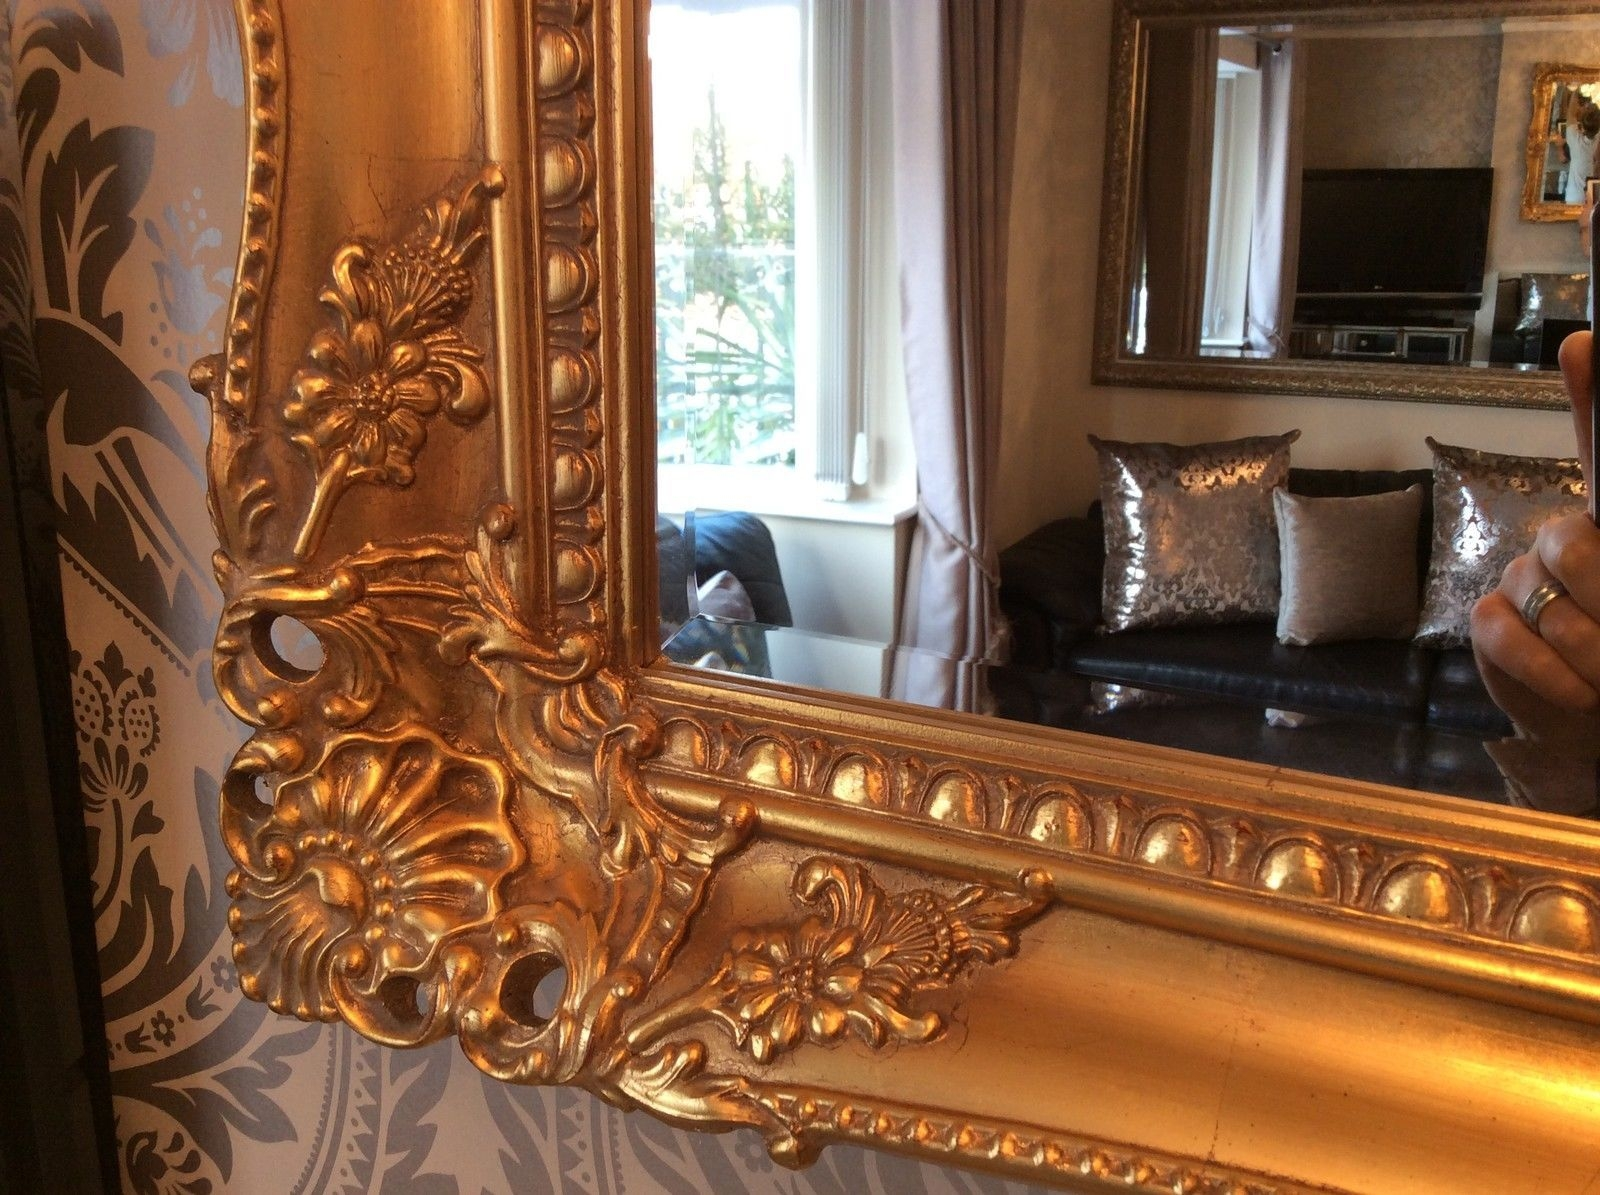 Large Gold Mirror Full Image For Large Decorative Mirror Elegant With Regard To Large Gold Ornate Mirror (View 11 of 15)